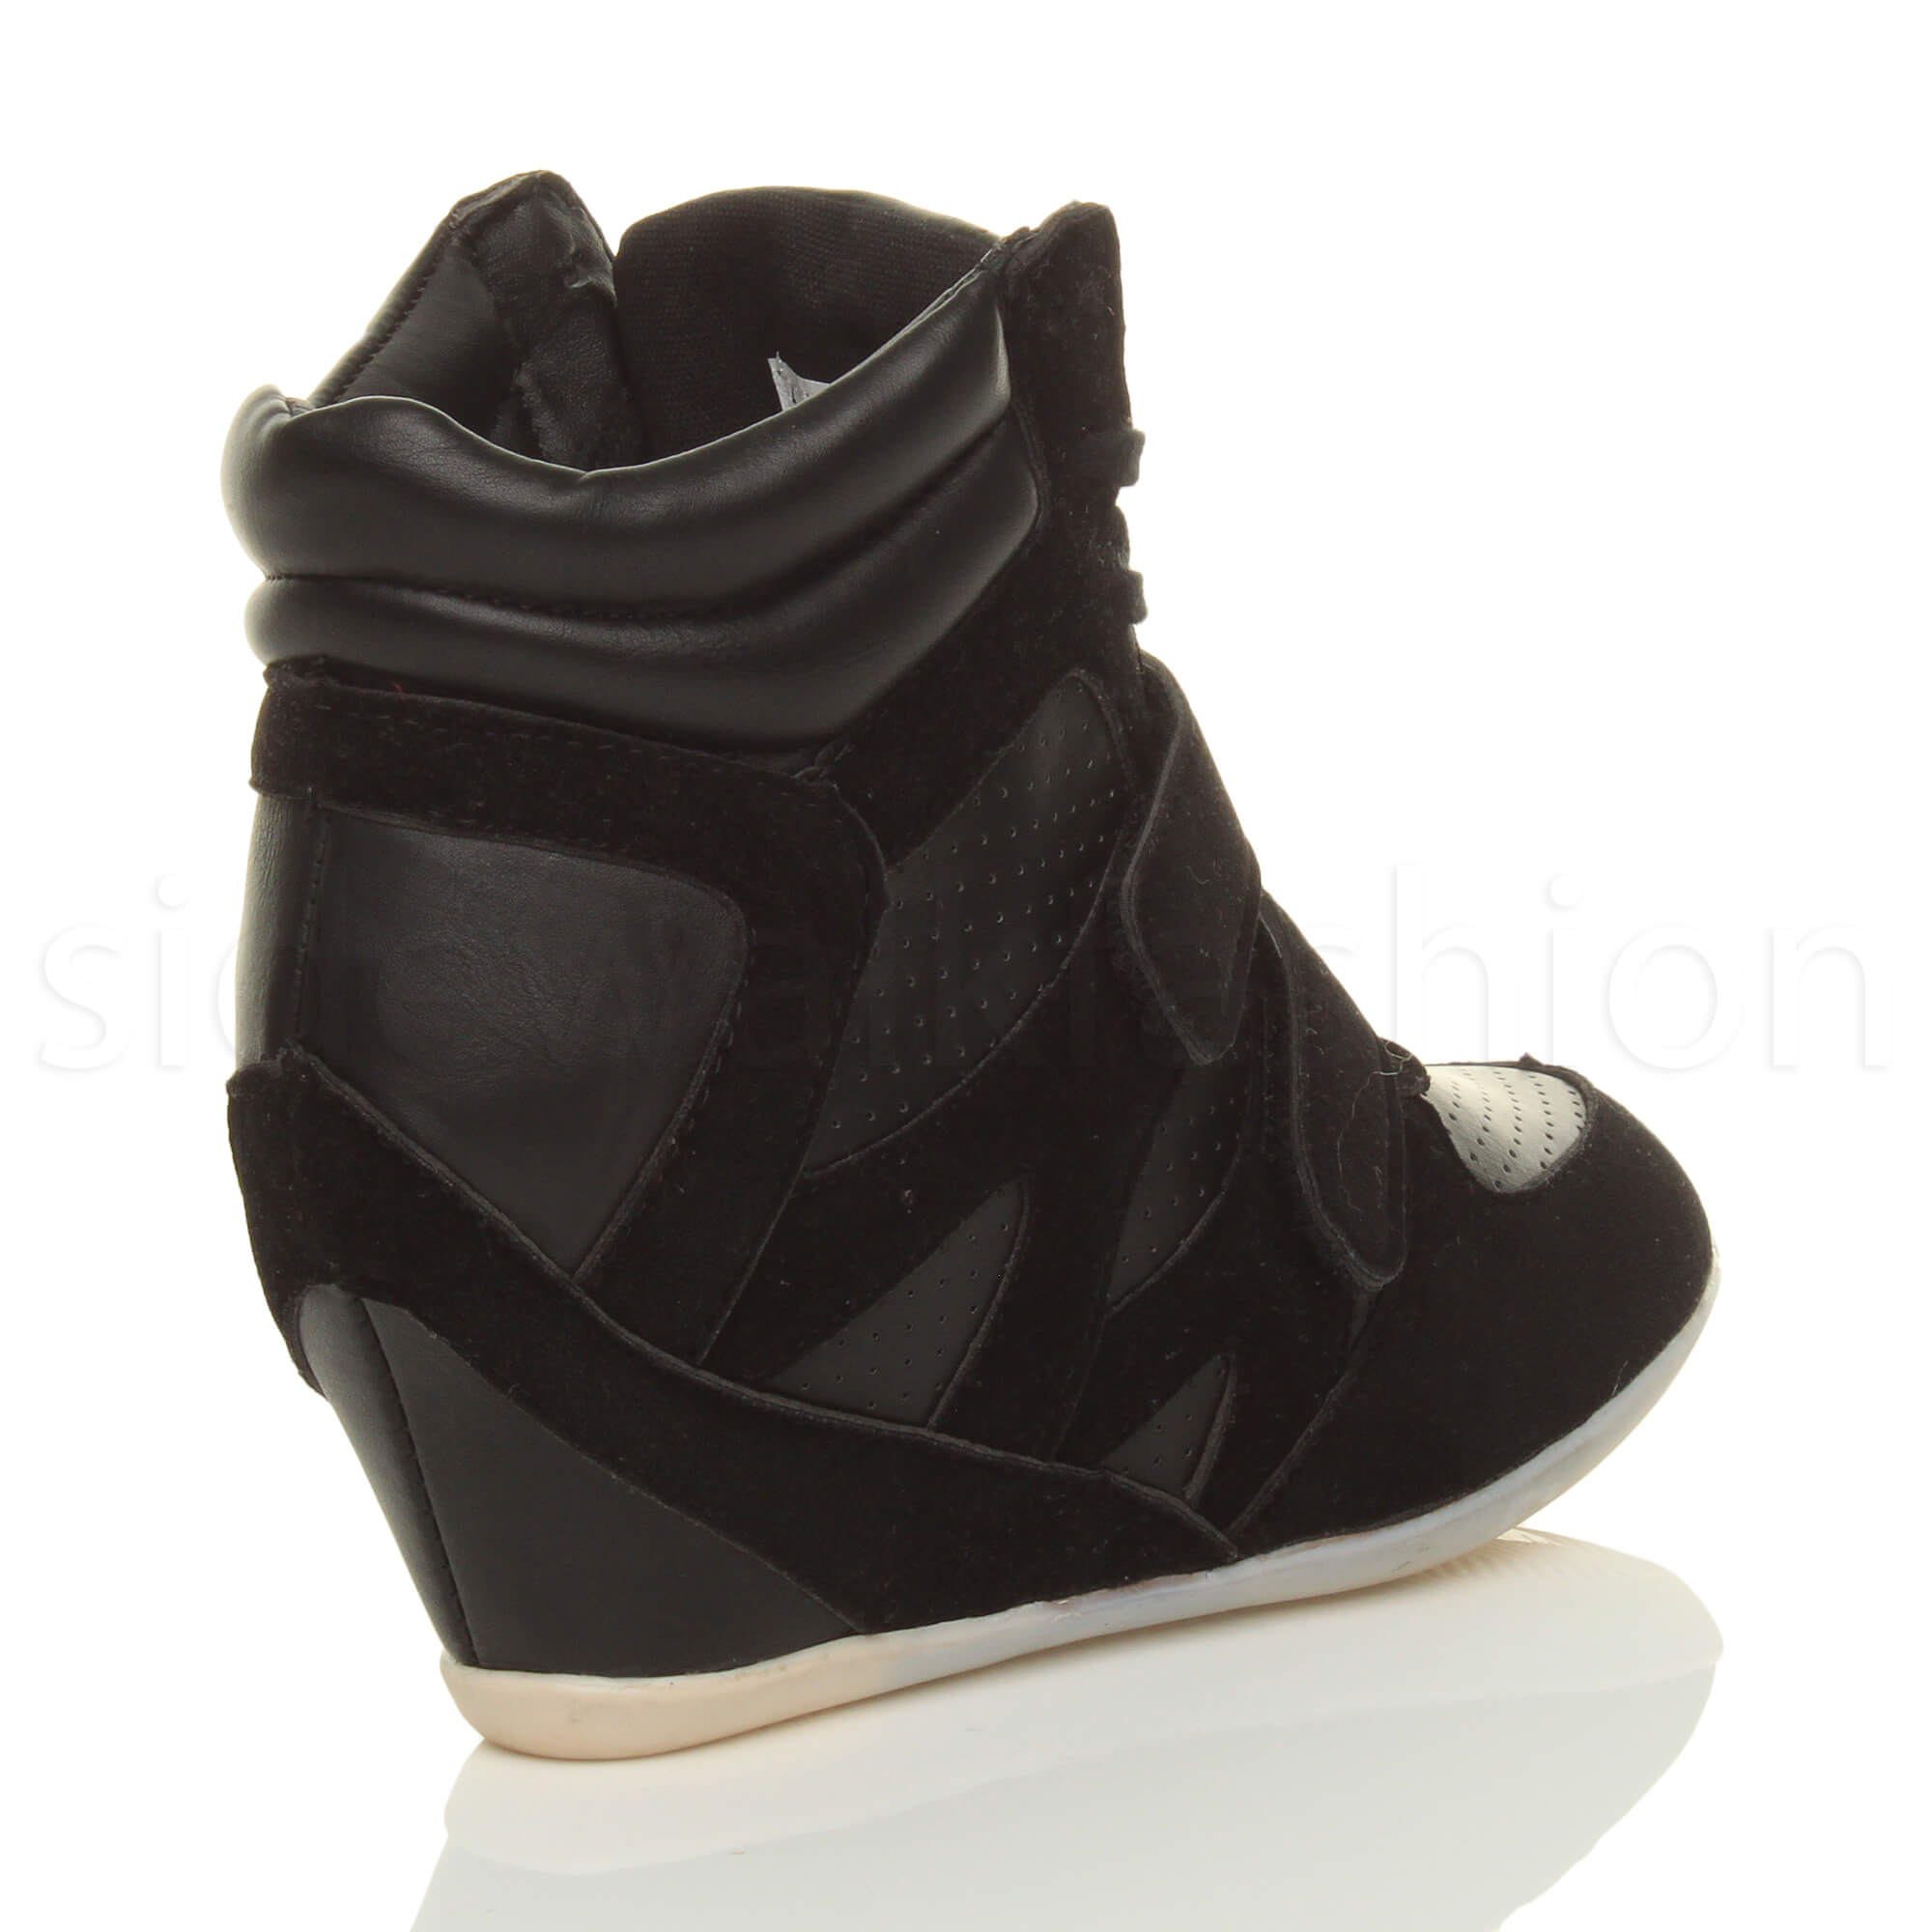 WOMENS LADIES HIGH HEEL LACE WEDGE HI HIGH TOP TRAINER ANKLE BOOTS ...